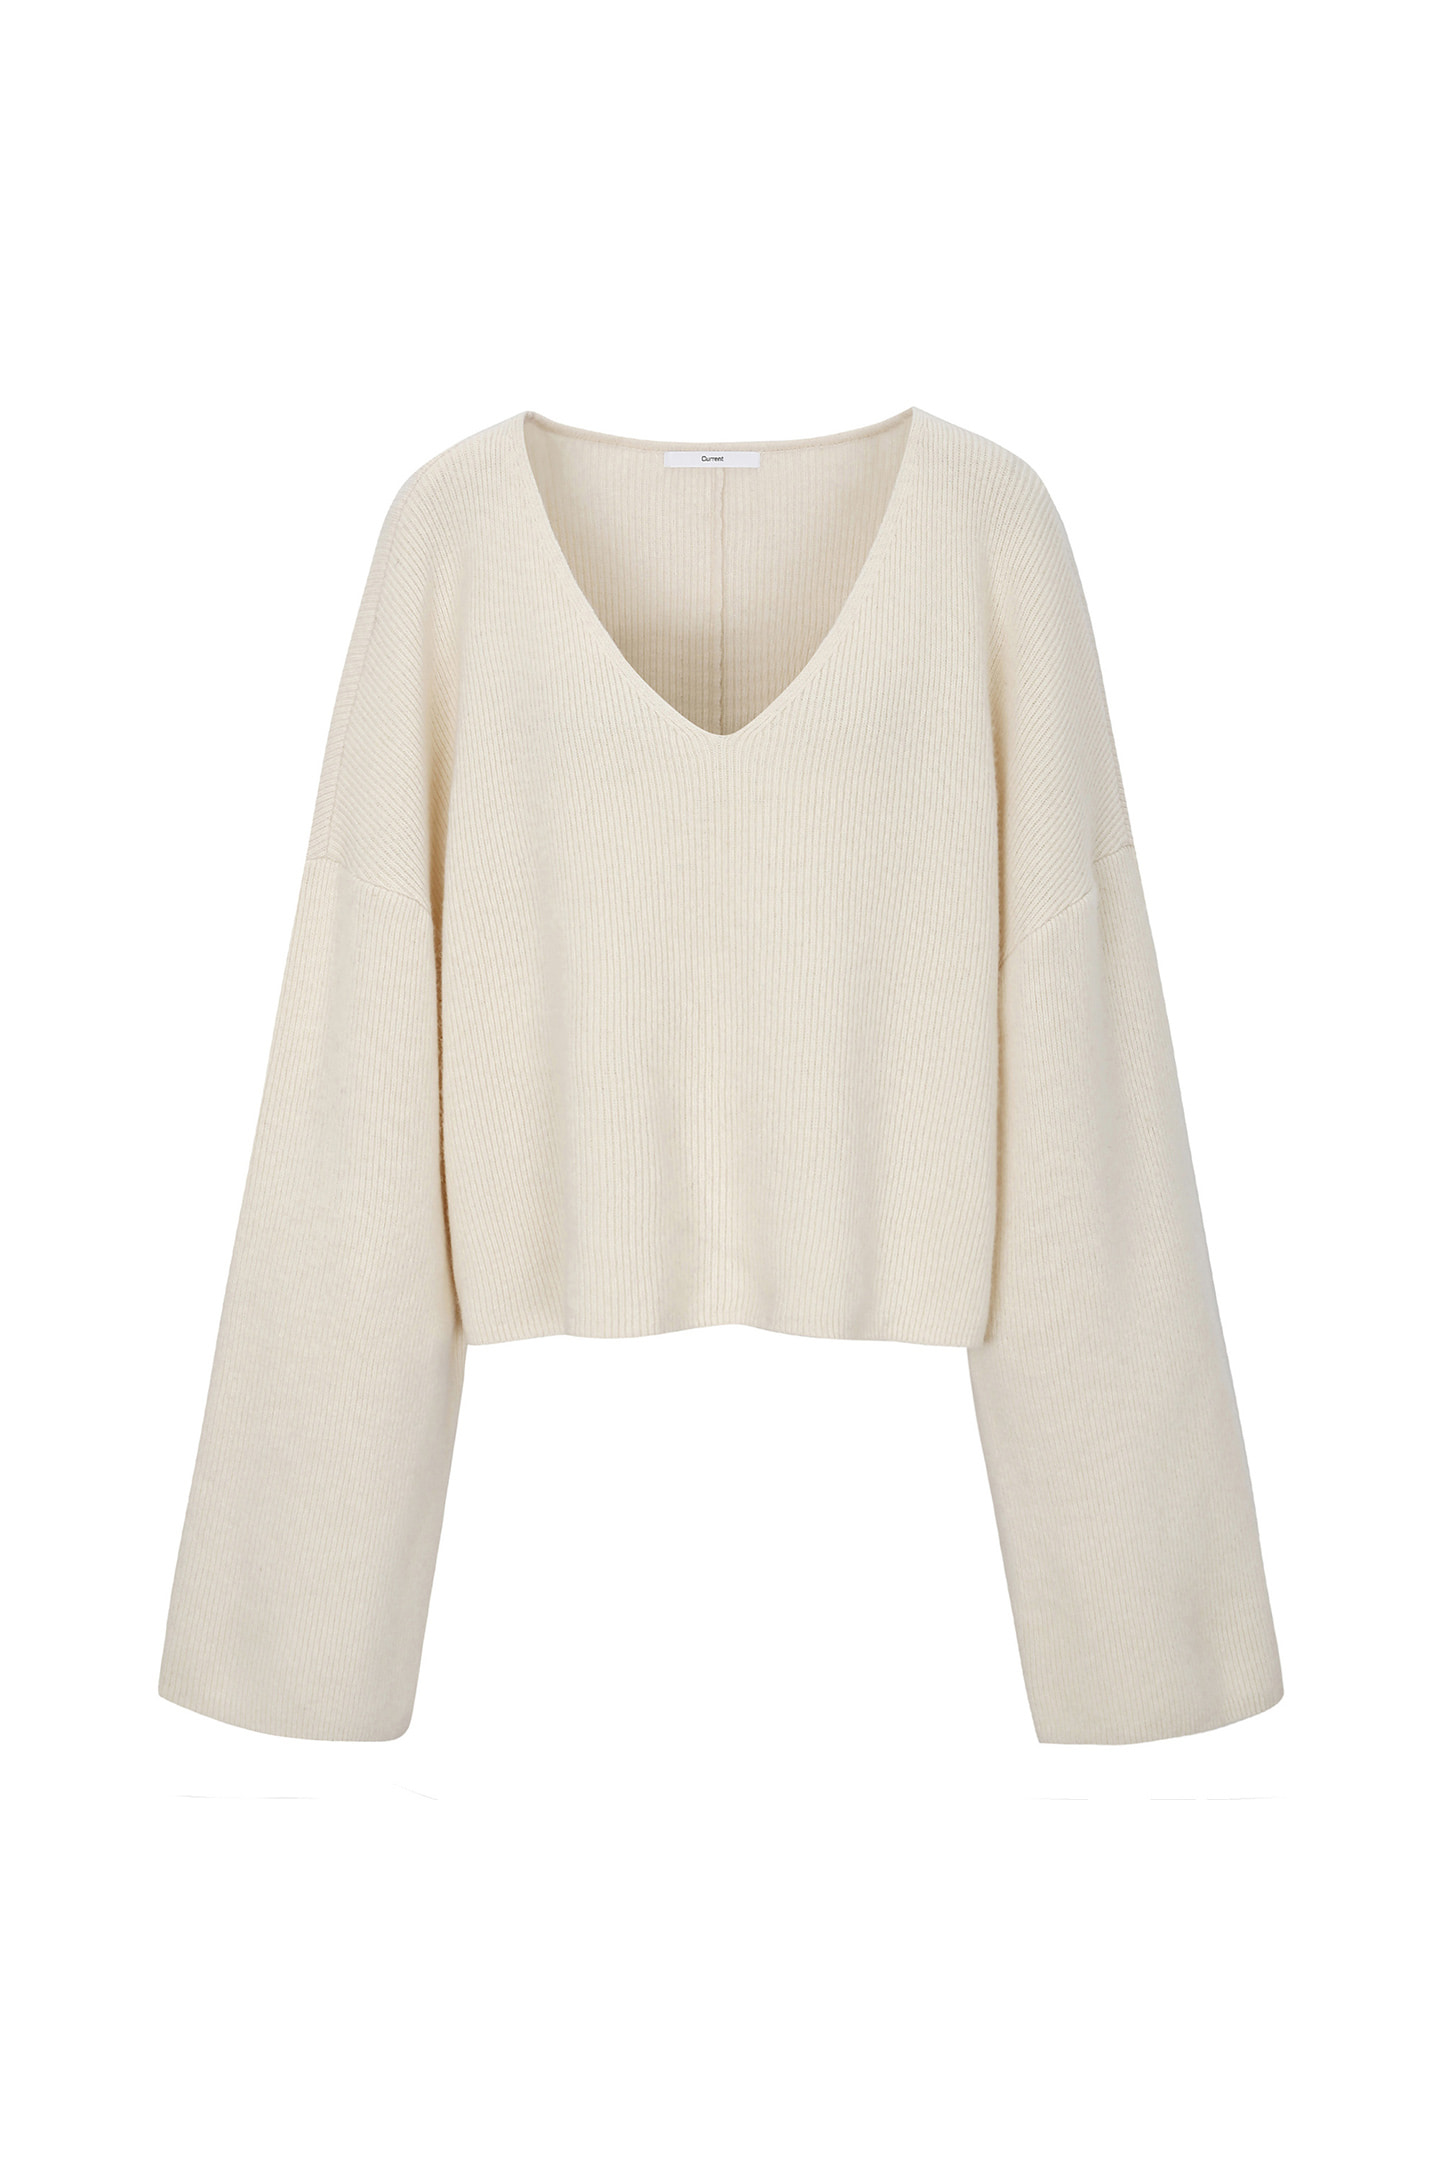 V-Neck Knit Crewneck [Ivory]